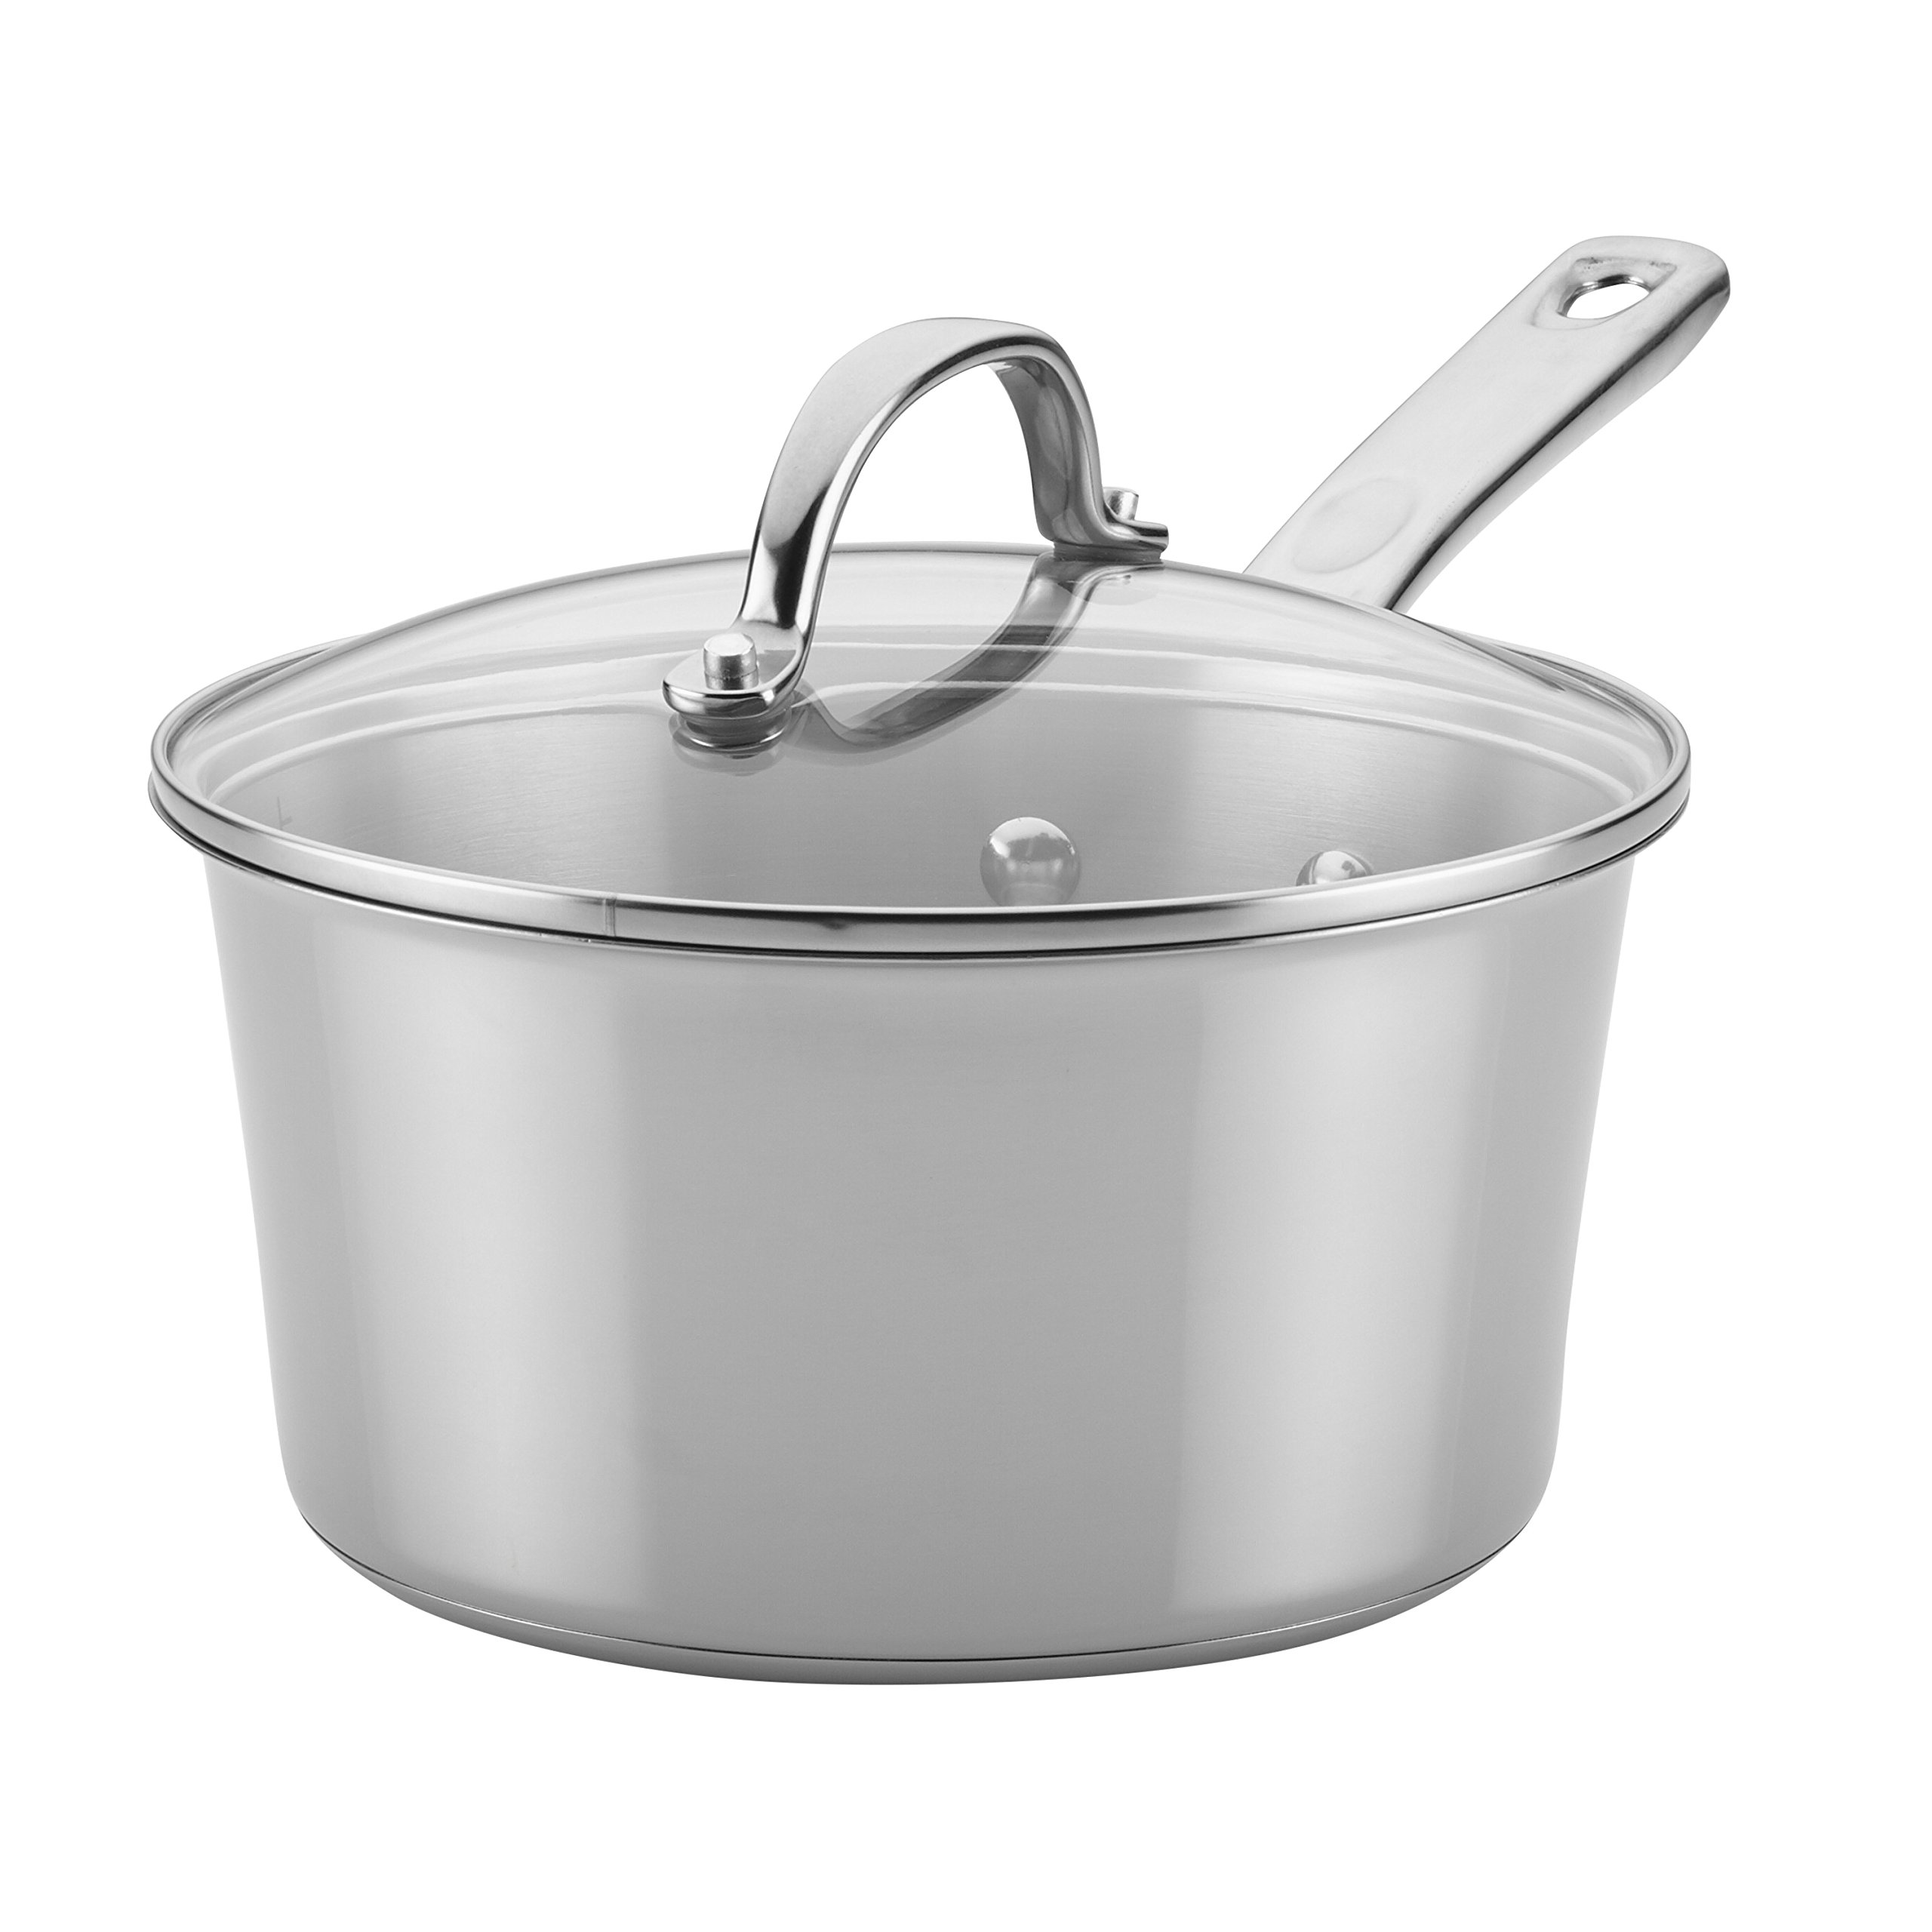 Ayesha Curry Home Collection Stainless Steel Covered Saucepan, 3 Quart